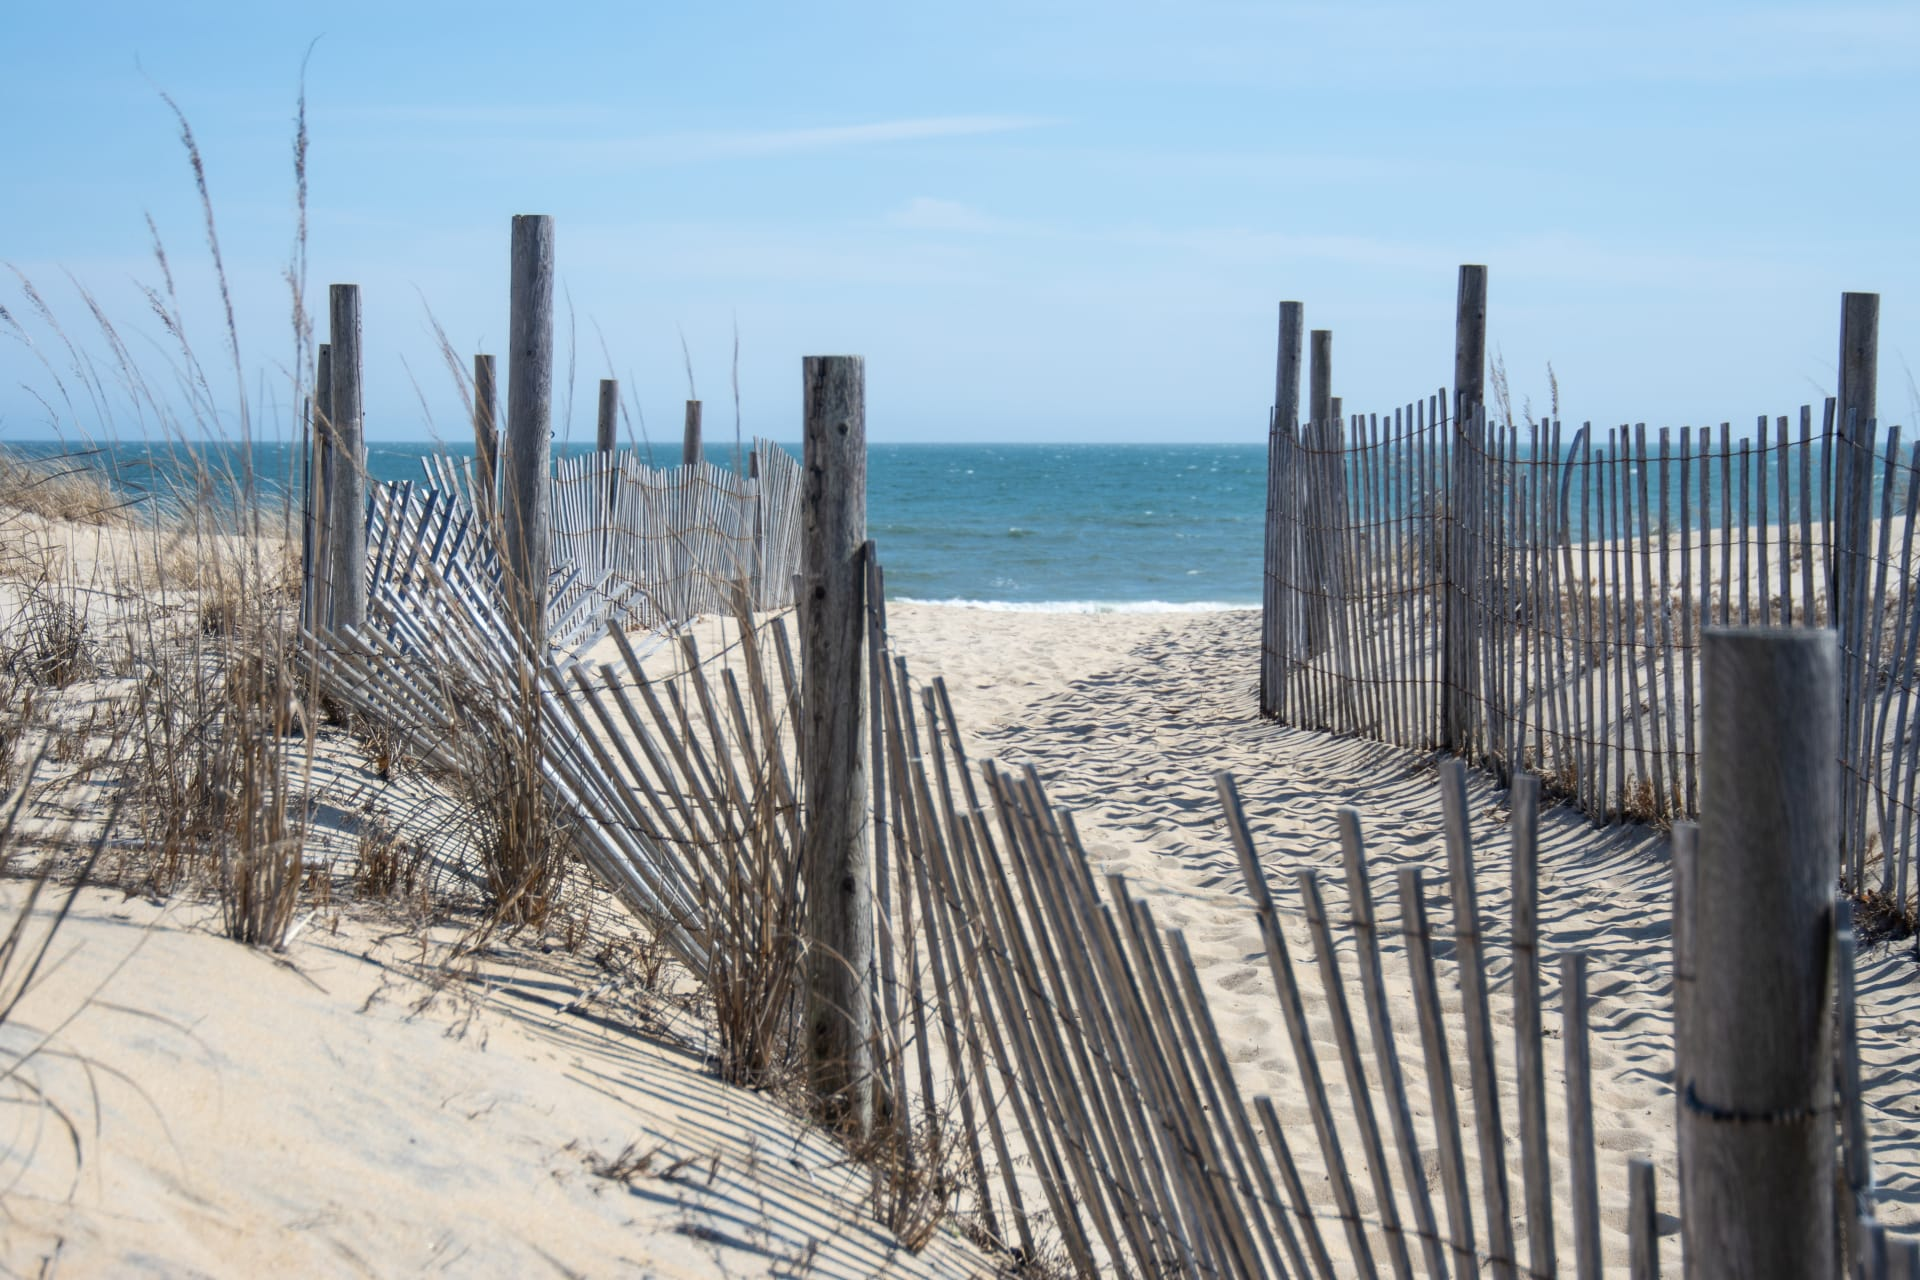 Best Beach Towns to Visit Near DC this Summer